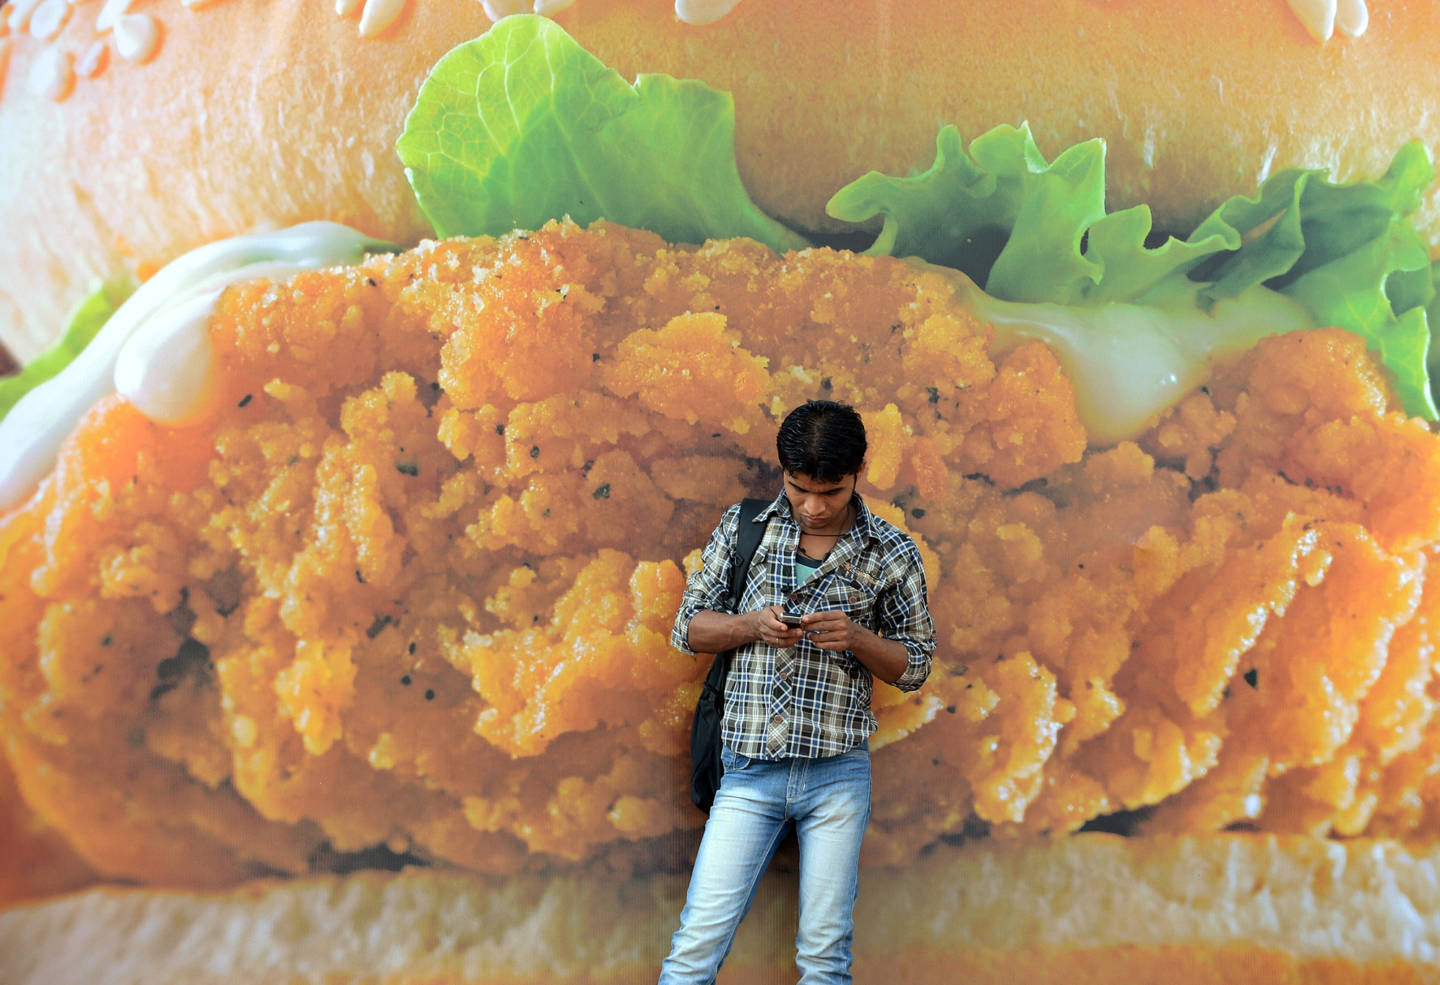 Across The Globe, Our Diets Are Making Us Sicker, Report Finds